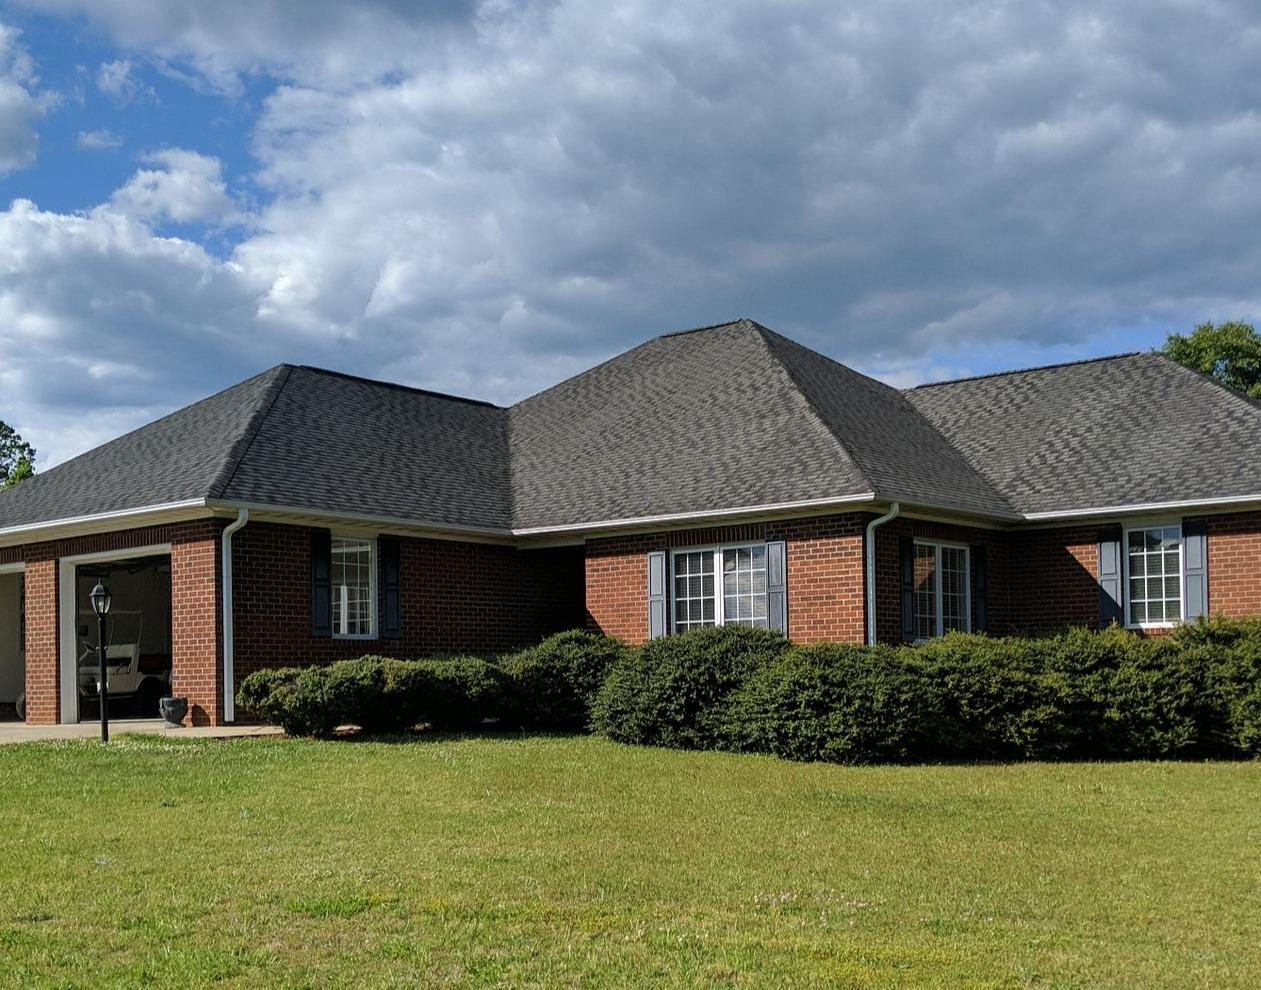 Full Roof Replacement in Walnut Cove, NC - Before Photo